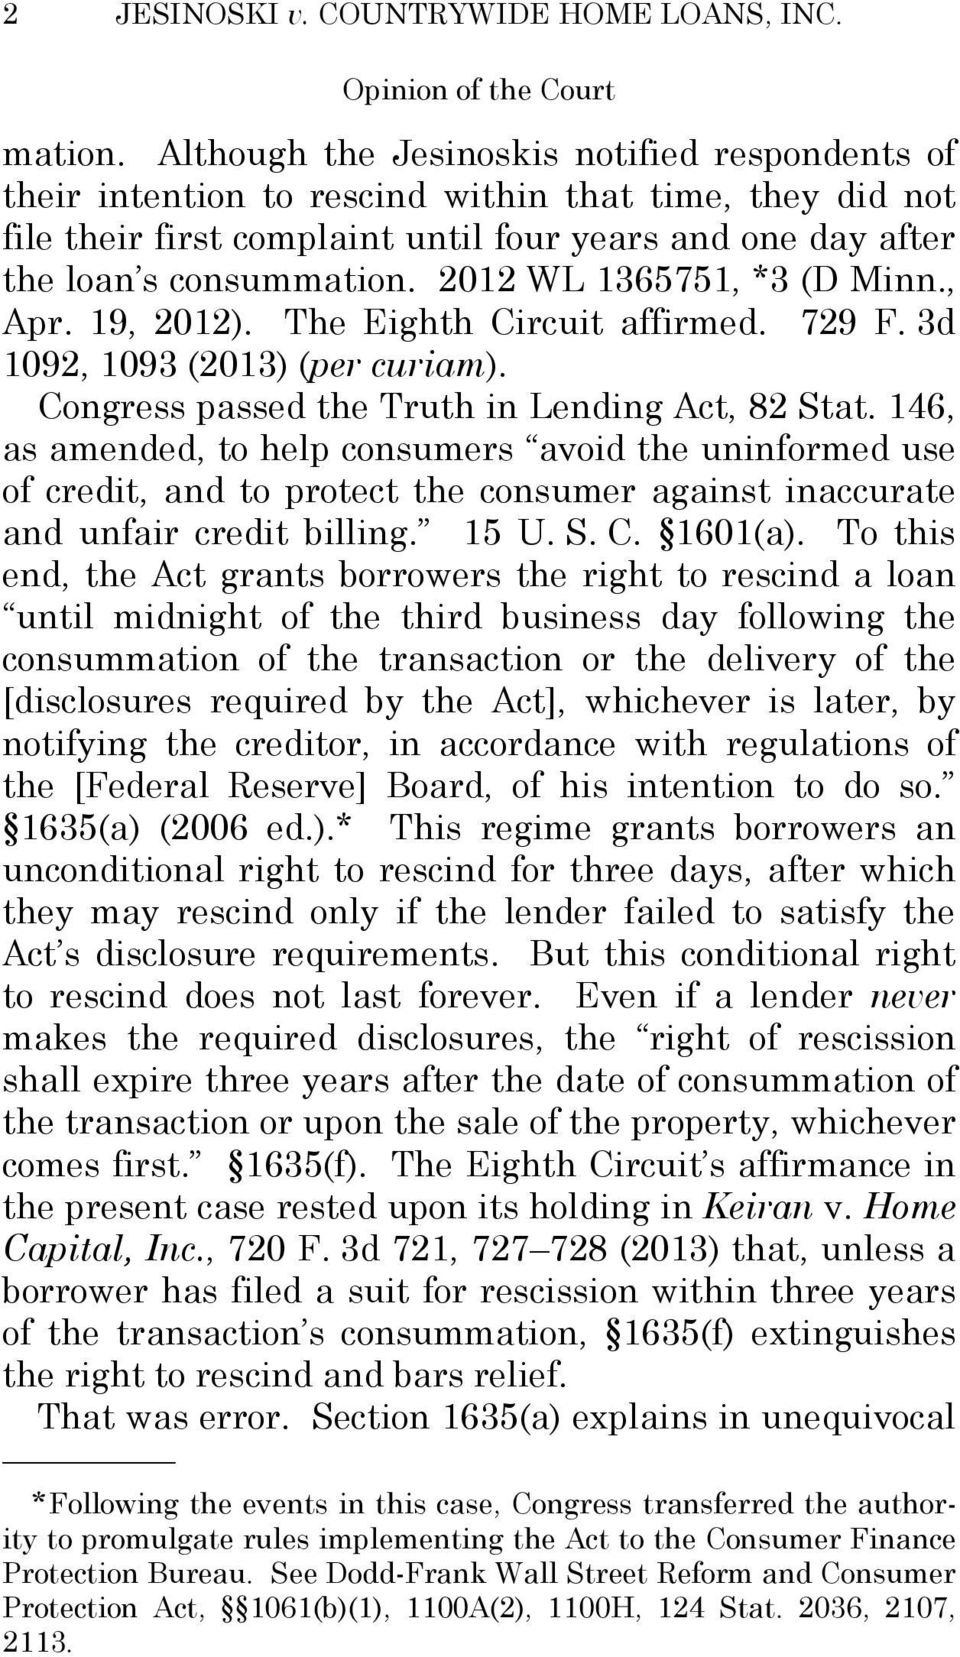 2012 WL 1365751, *3 (D Minn., Apr. 19, 2012). The Eighth Circuit affirmed. 729 F. 3d 1092, 1093 (2013) (per curiam). Congress passed the Truth in Lending Act, 82 Stat.